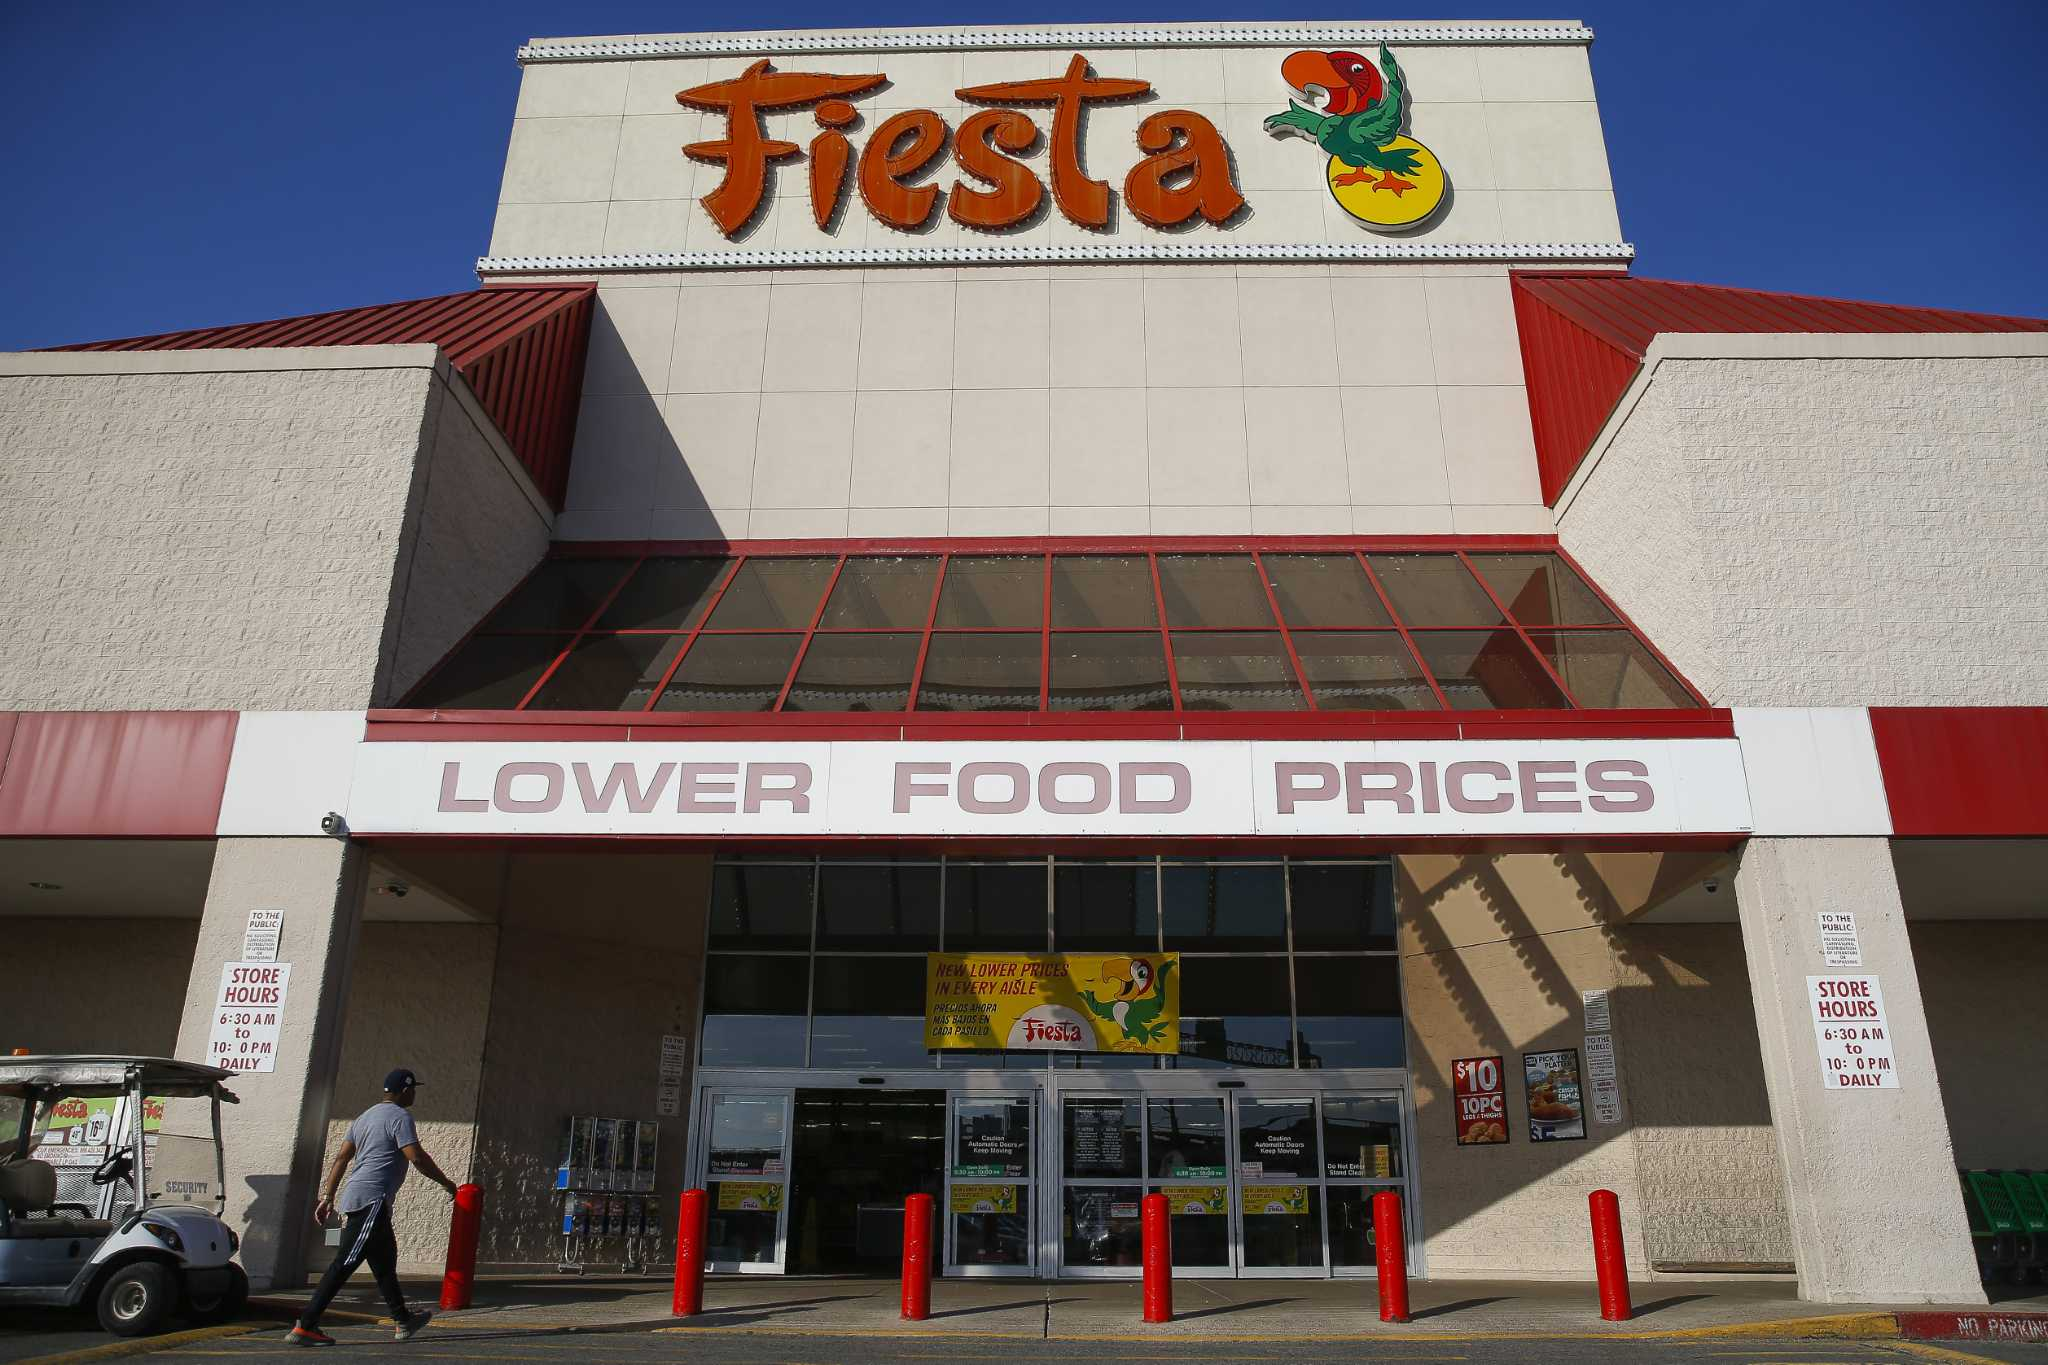 Houston based Fiesta Mart to be acquired by El Super grocery chain